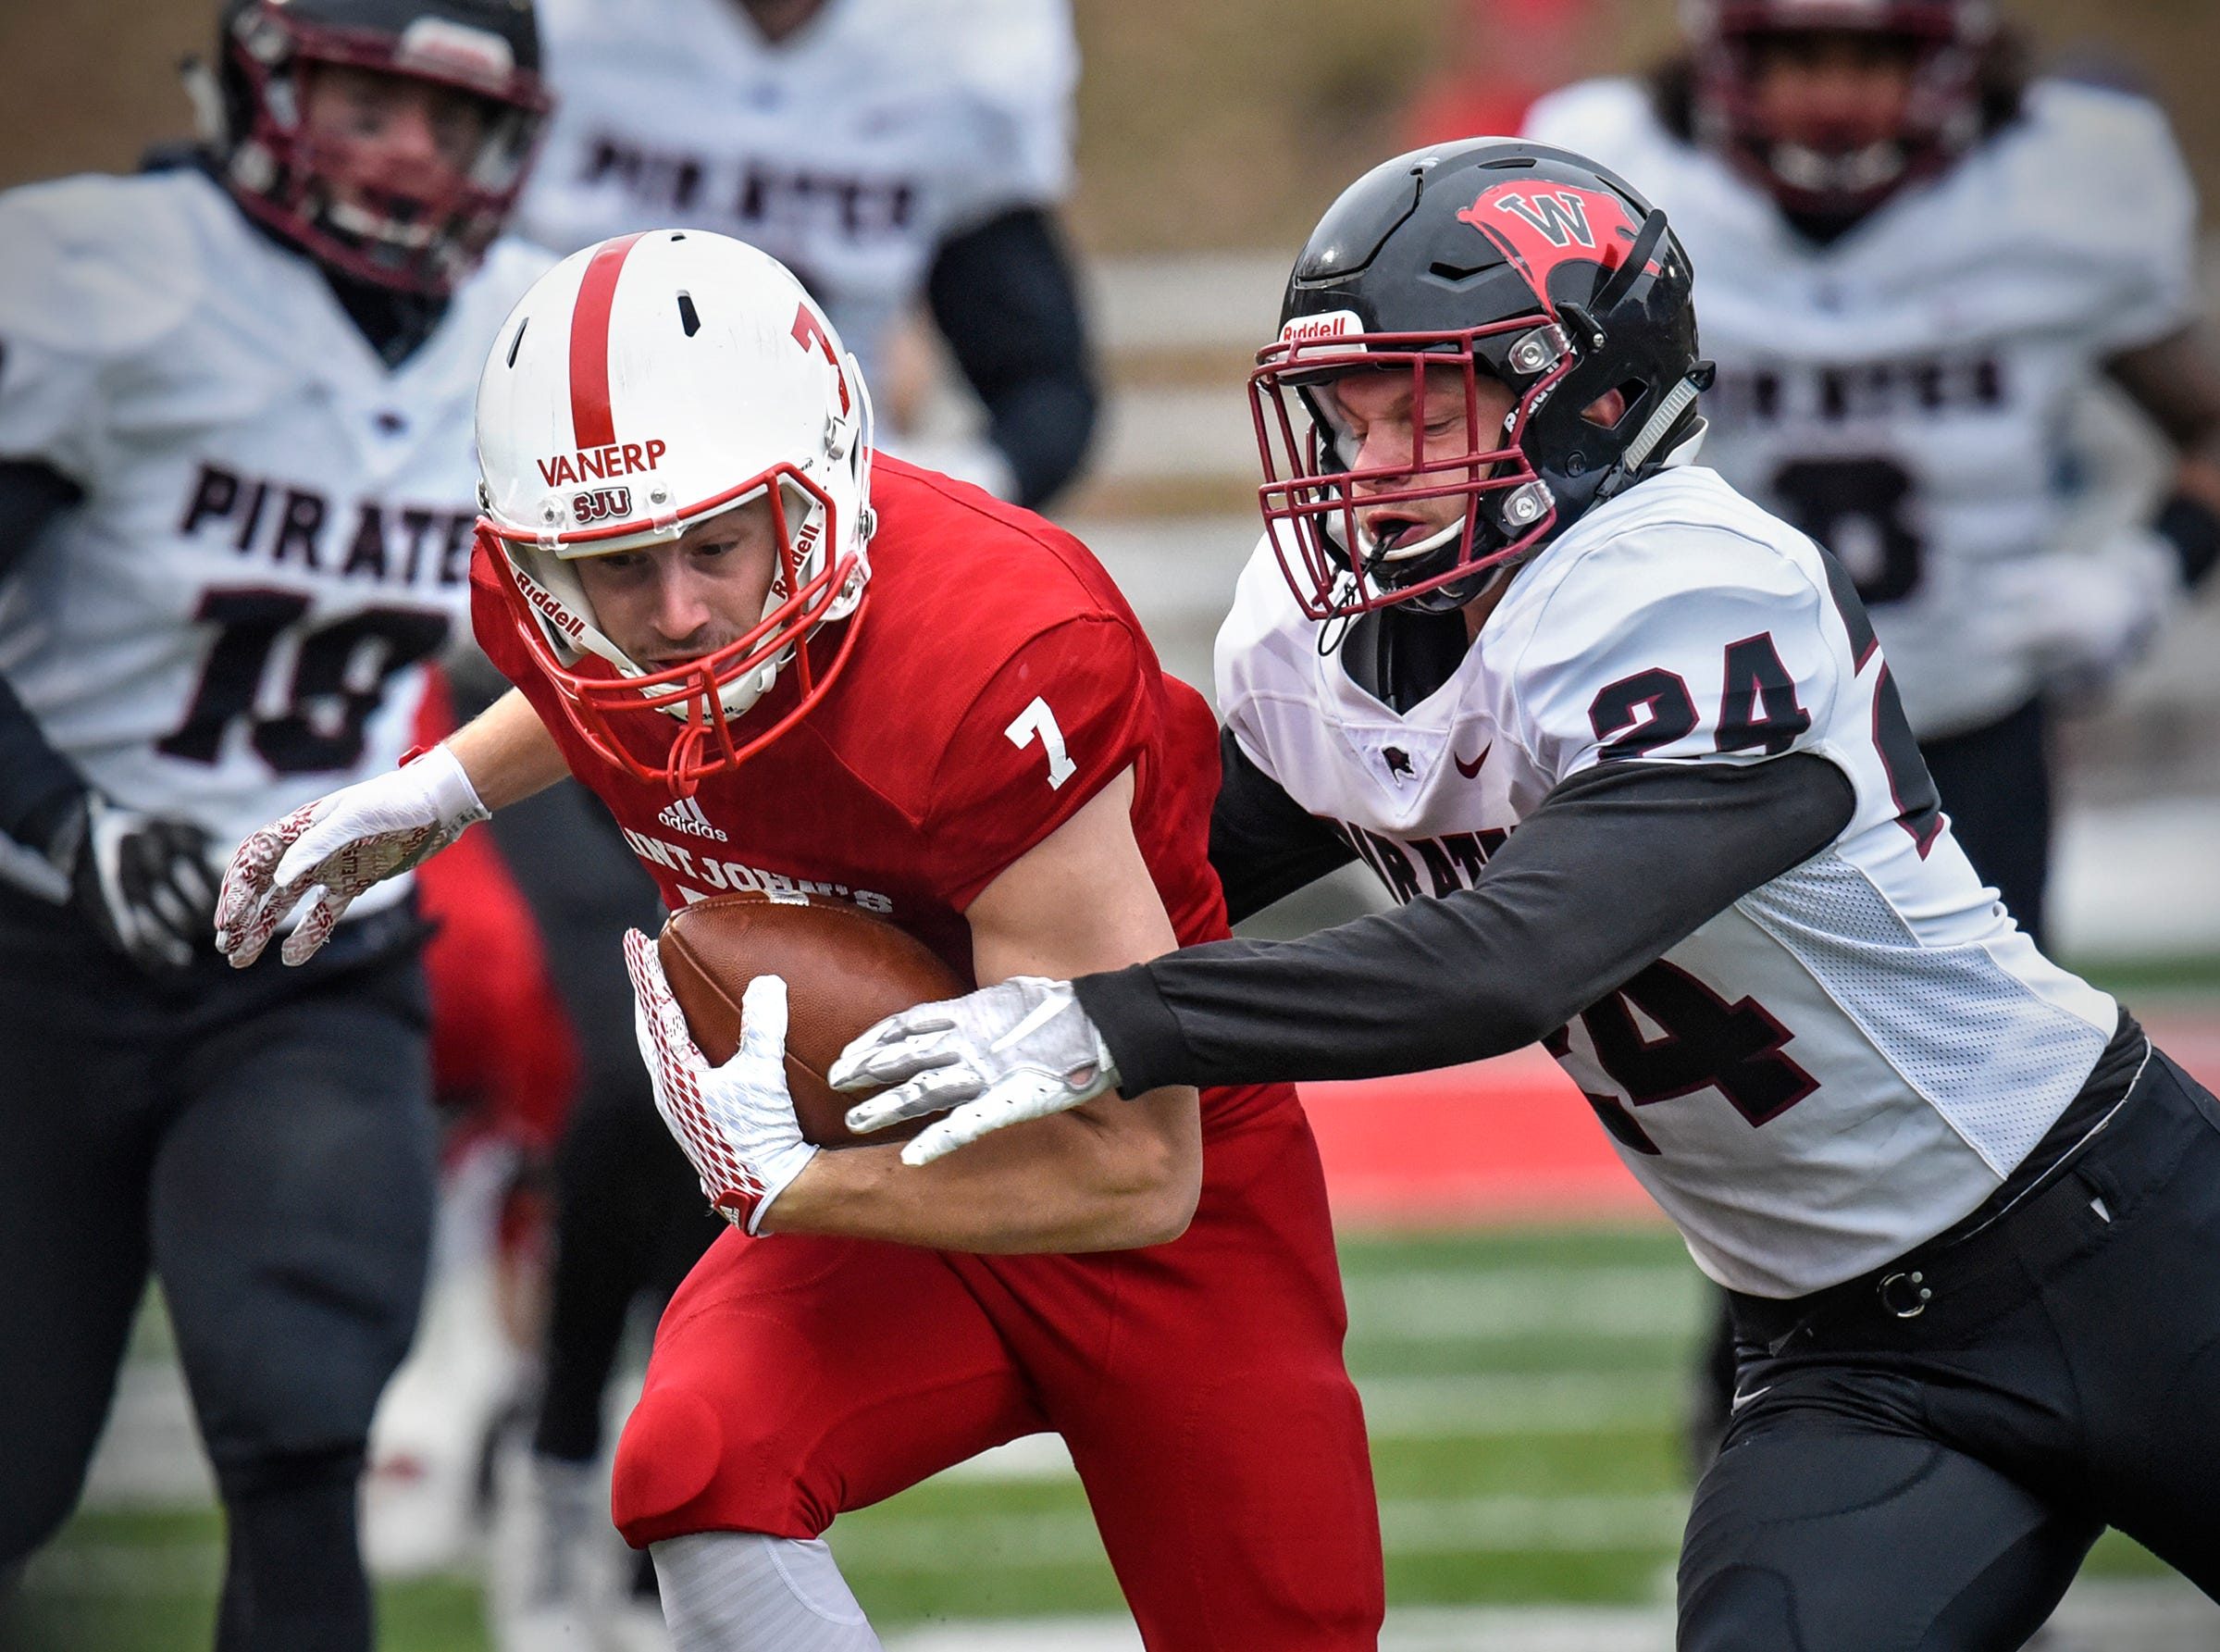 Wide receiver Andrew VanErp of St. John's tries to escape a tackle by Zach Hillman of Whitworth during the Saturday, Nov. 24, game at Clemens Stadium in Collegeville.